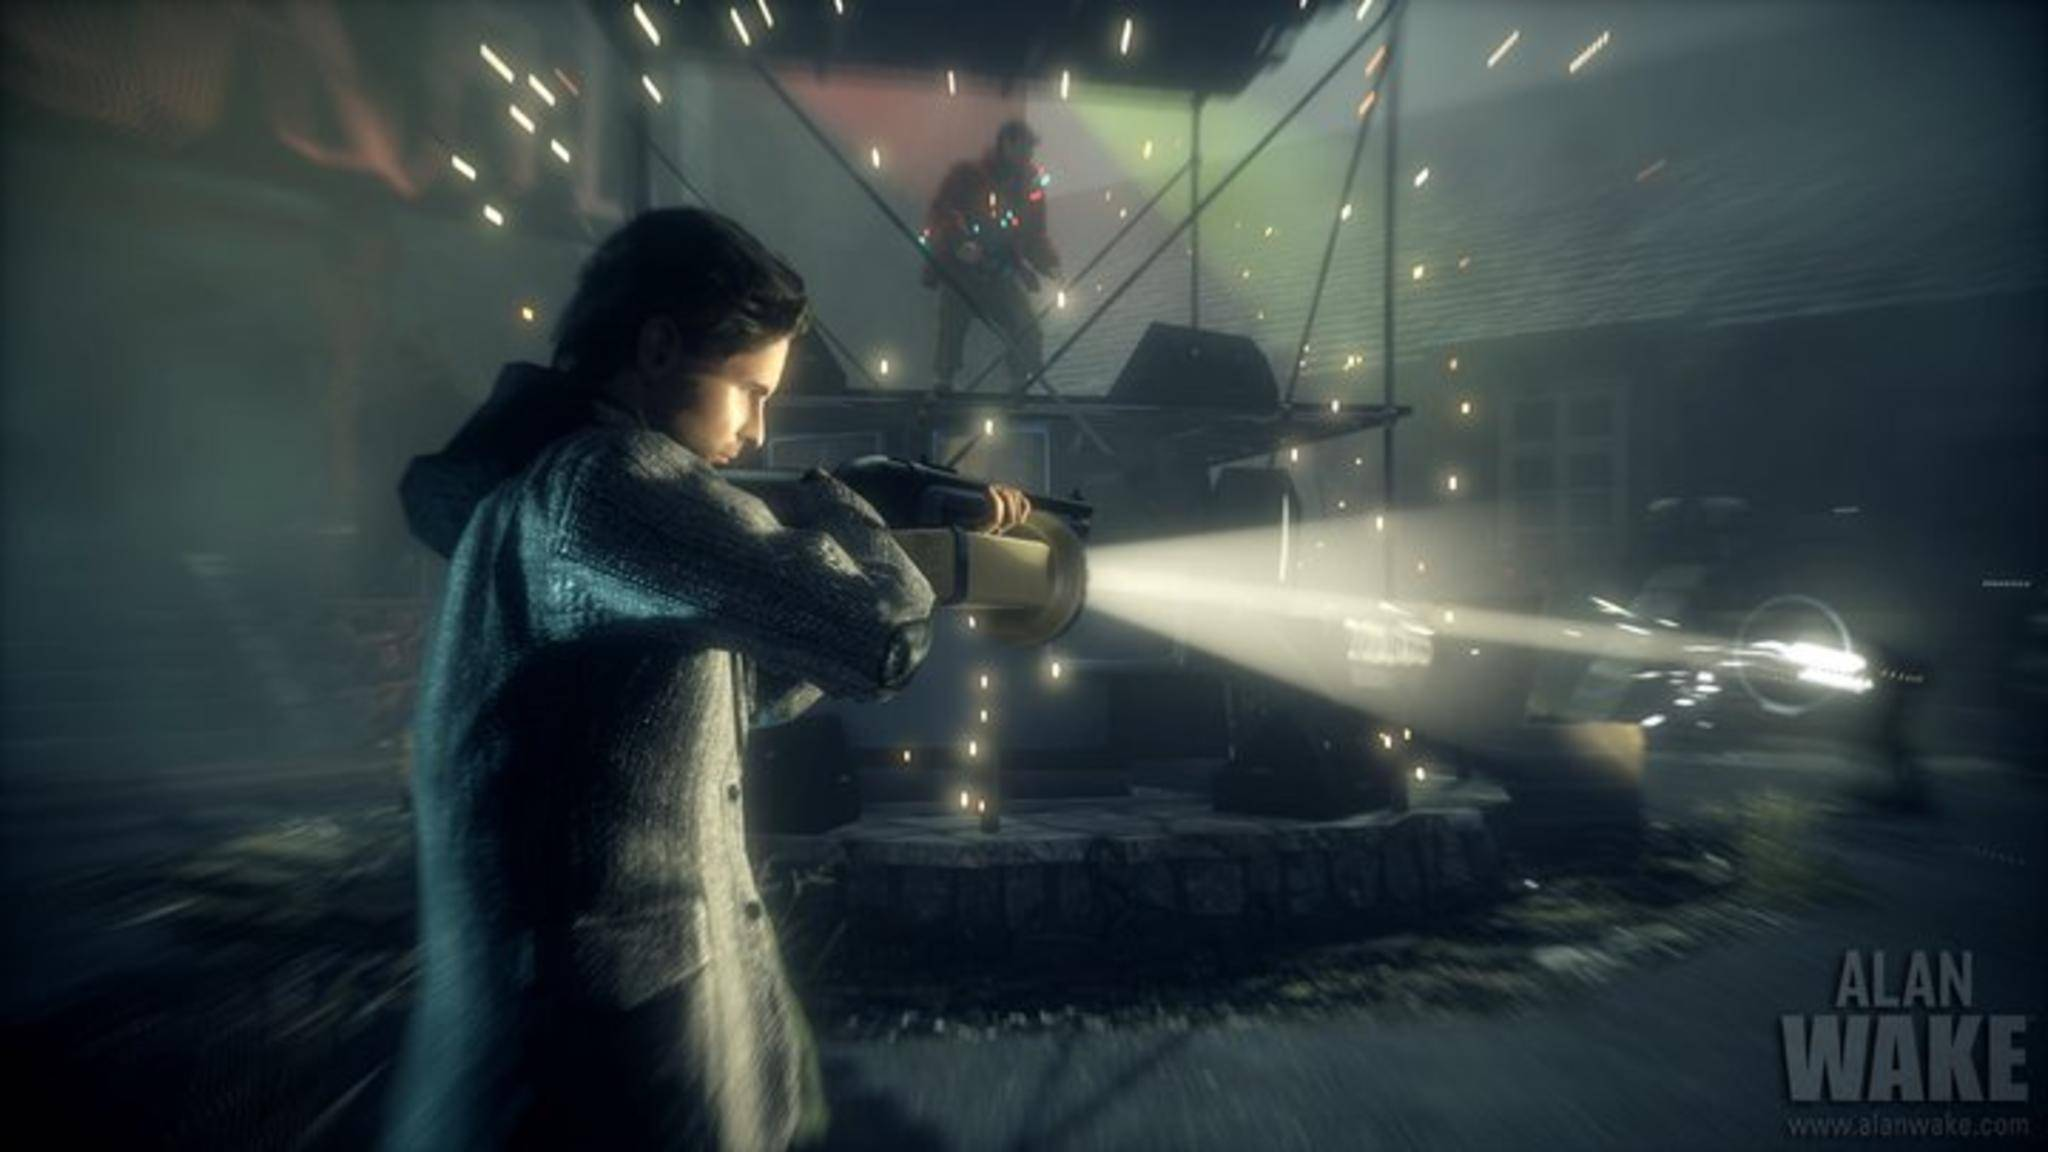 alan-wake-remedy-screenshot